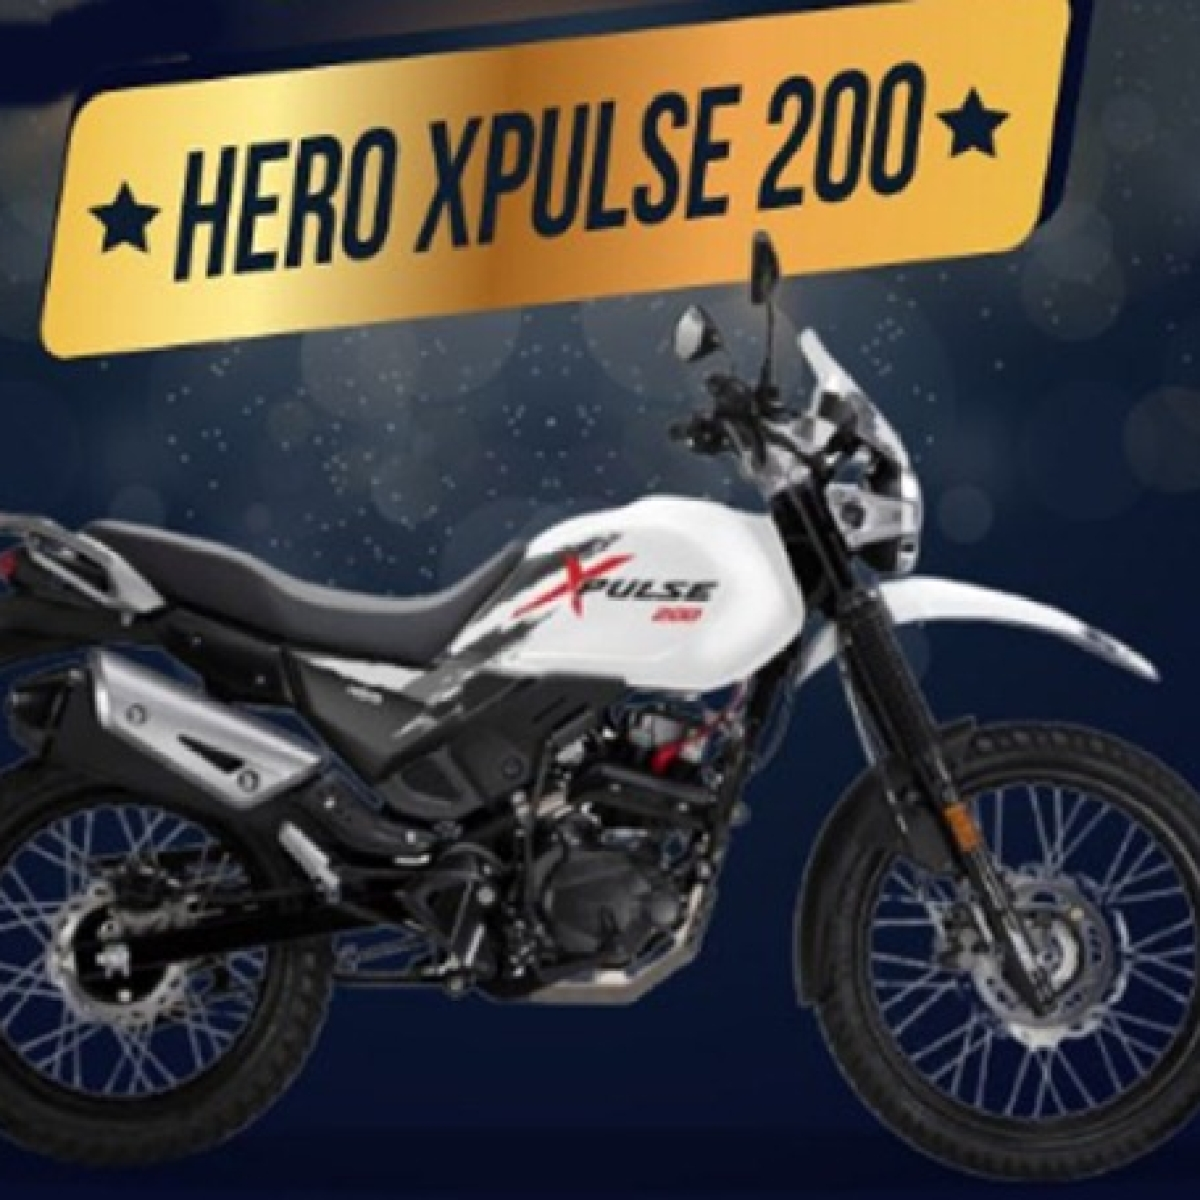 Hero MotoCorp's premium adventure bike - XPulse 200 - awarded coveted 2020 Indian Motorcycle of the Year